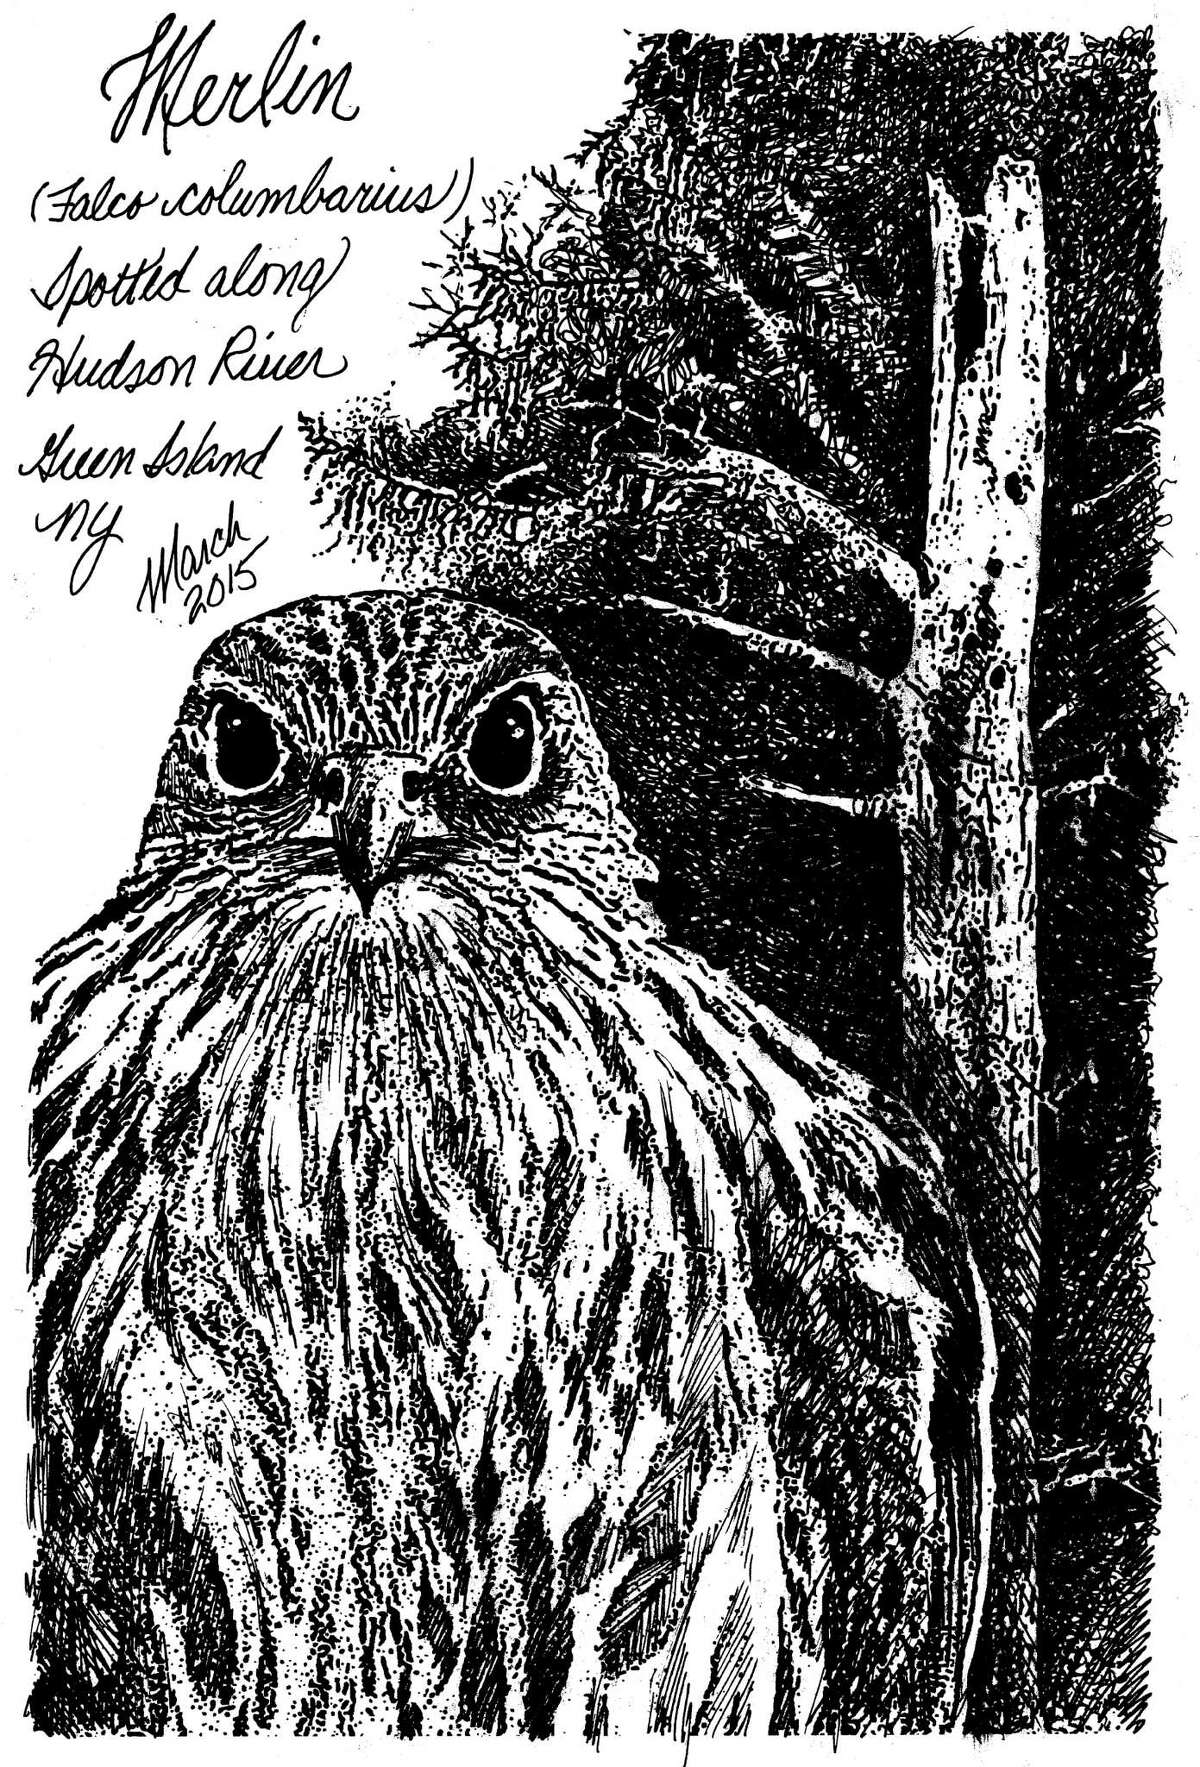 The Merlin is a small but powerfully muscular broad chested falcon with sharply pointed wings and piercing dark eyes topped with thin white eyebrows. They live and nest along forest edged waterways and shorelines across New York and north into Maine. (Carol Coogan)